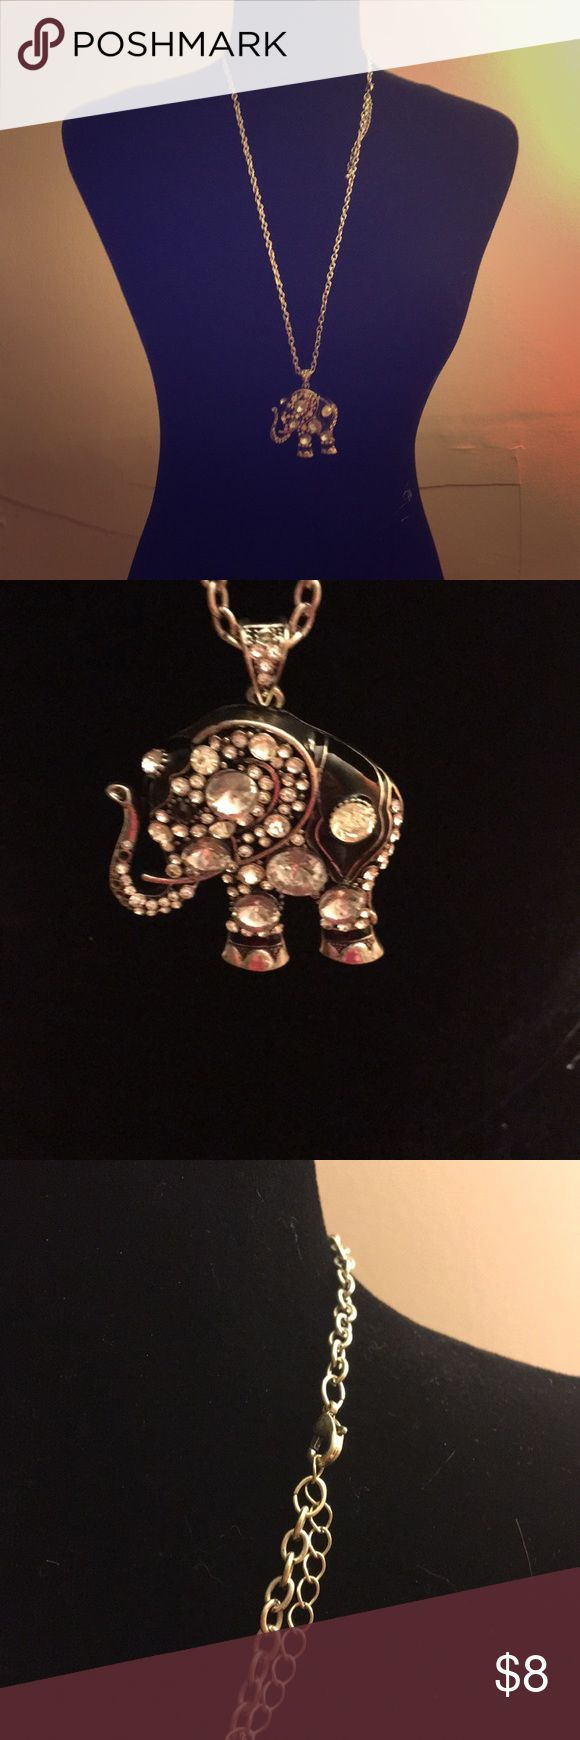 Elephant necklace Silver necklace- all jewels in tact  Beautiful necklace Jewelry Necklaces